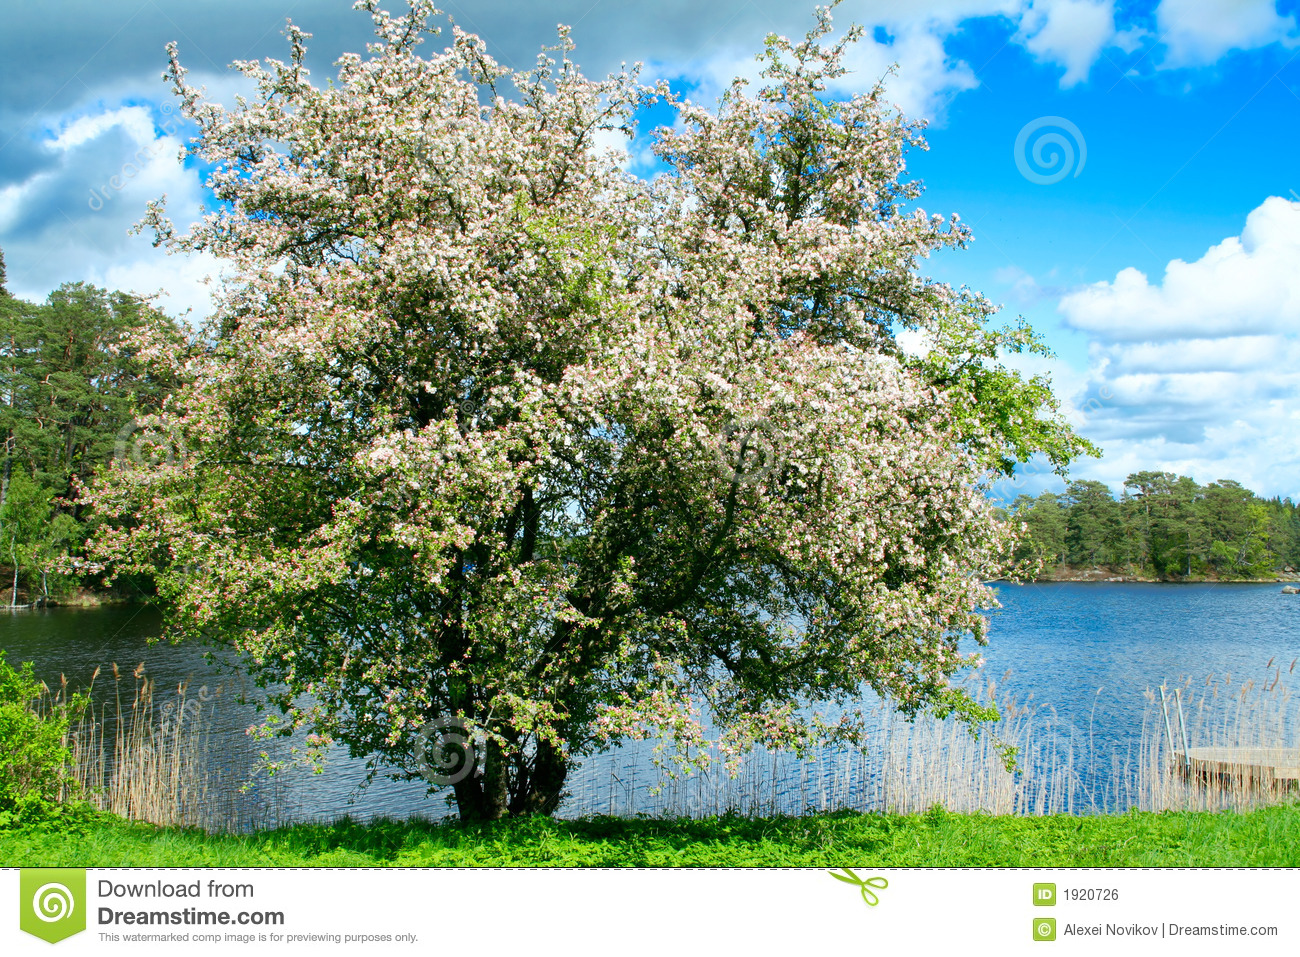 A blooming apple tree at lakeside